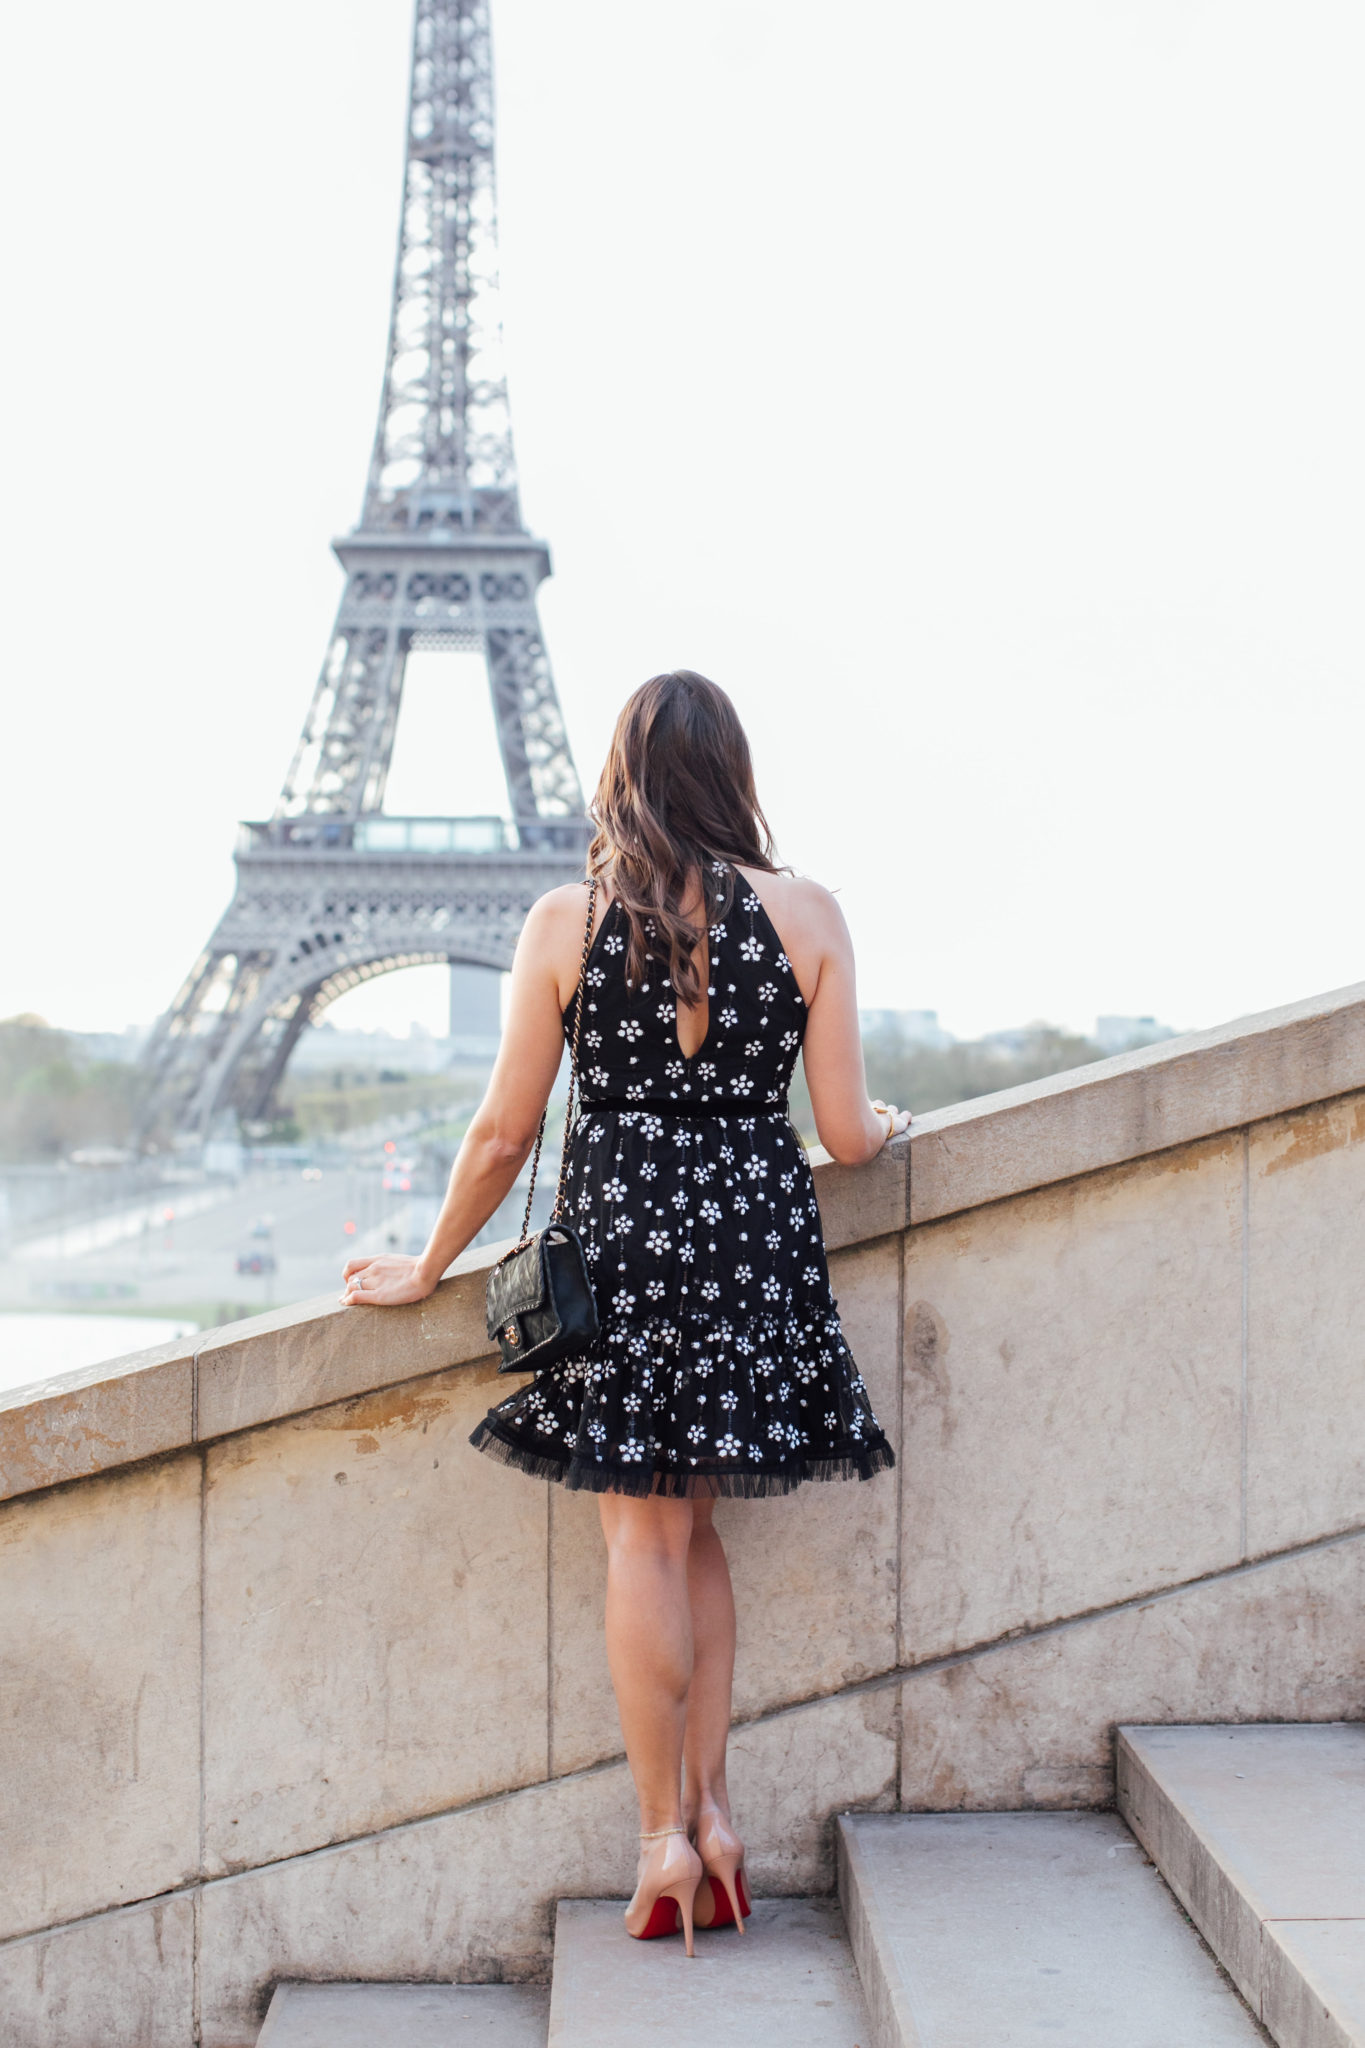 A Glam Lifestyle blogger Amanda shows her Paris fashion style at the Eiffel Tower in the Alexis Poppy dress with nude Christian Louboutin Pigalle pumps